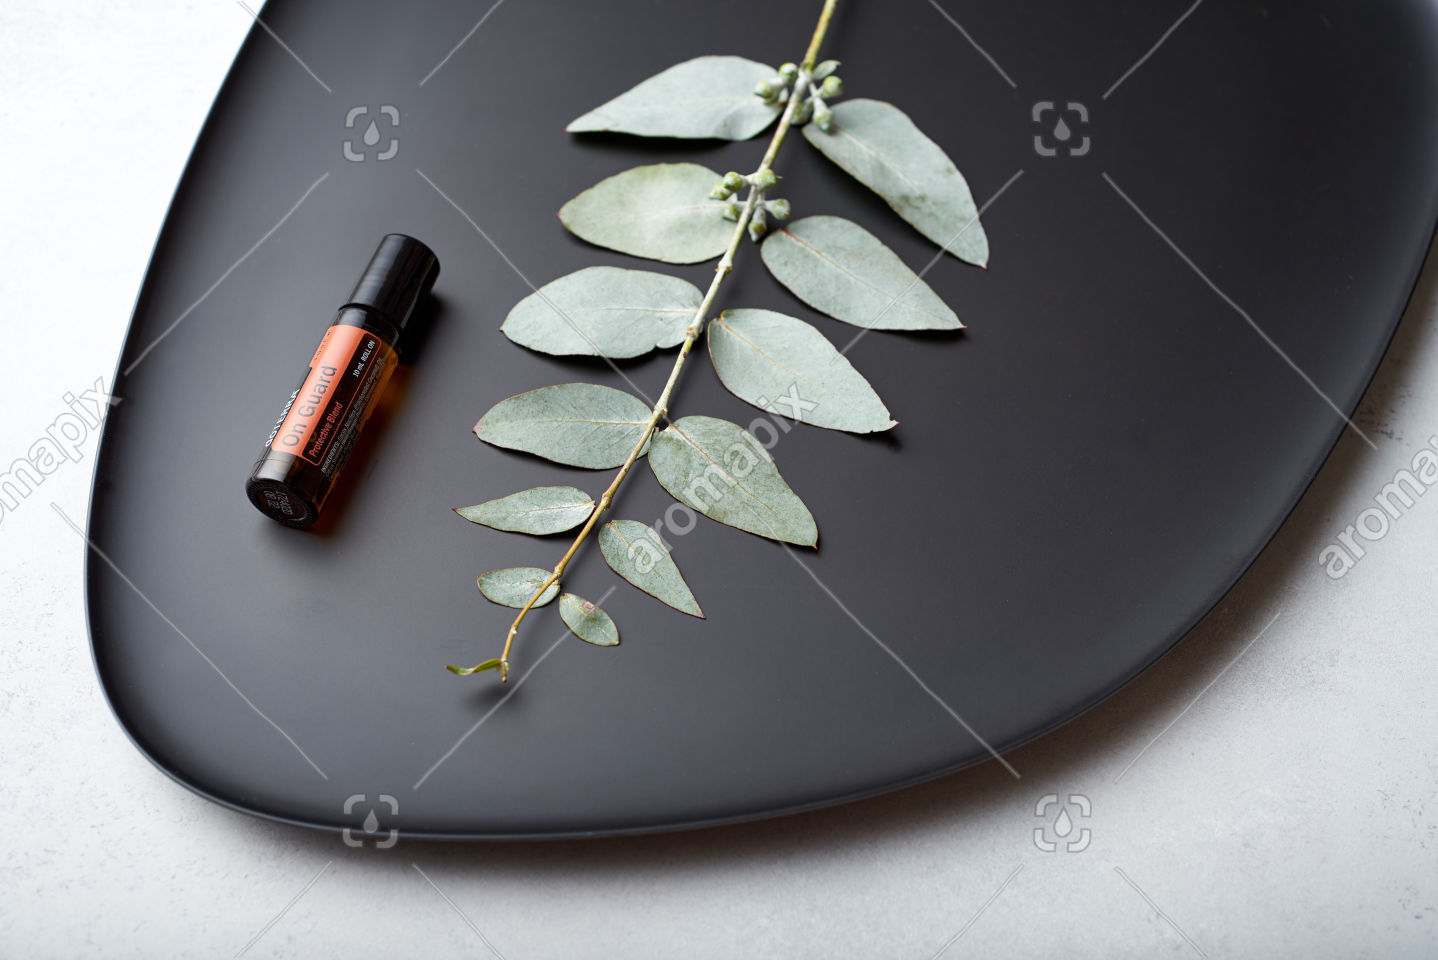 doTERRA On Guard Touch and eucalyptus leaves on black plate